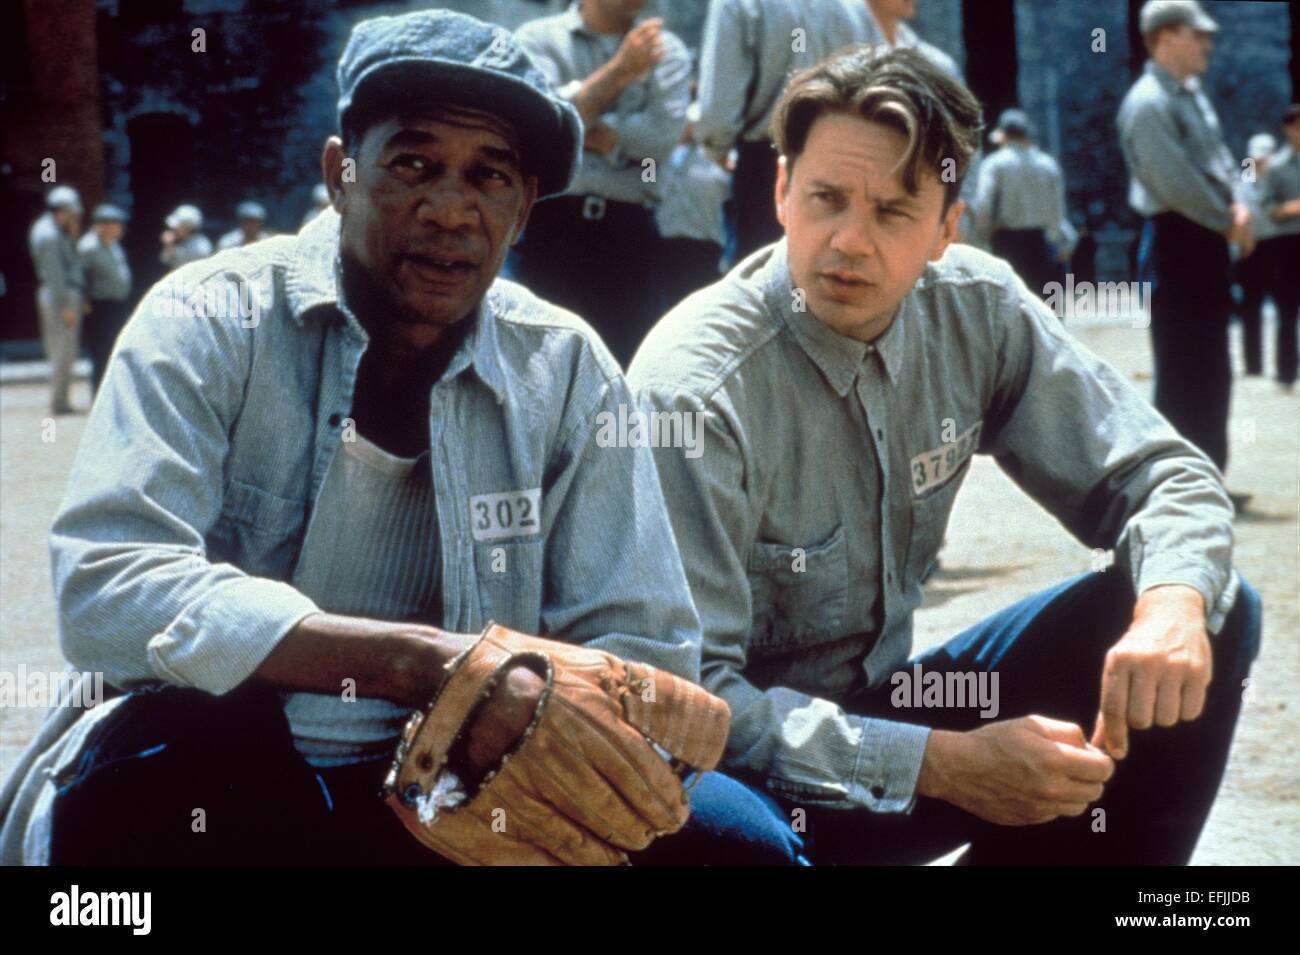 MORGAN FREEMAN, TIM ROBBINS, THE SHAWSHANK REDEMPTION, 1994 - Stock Image